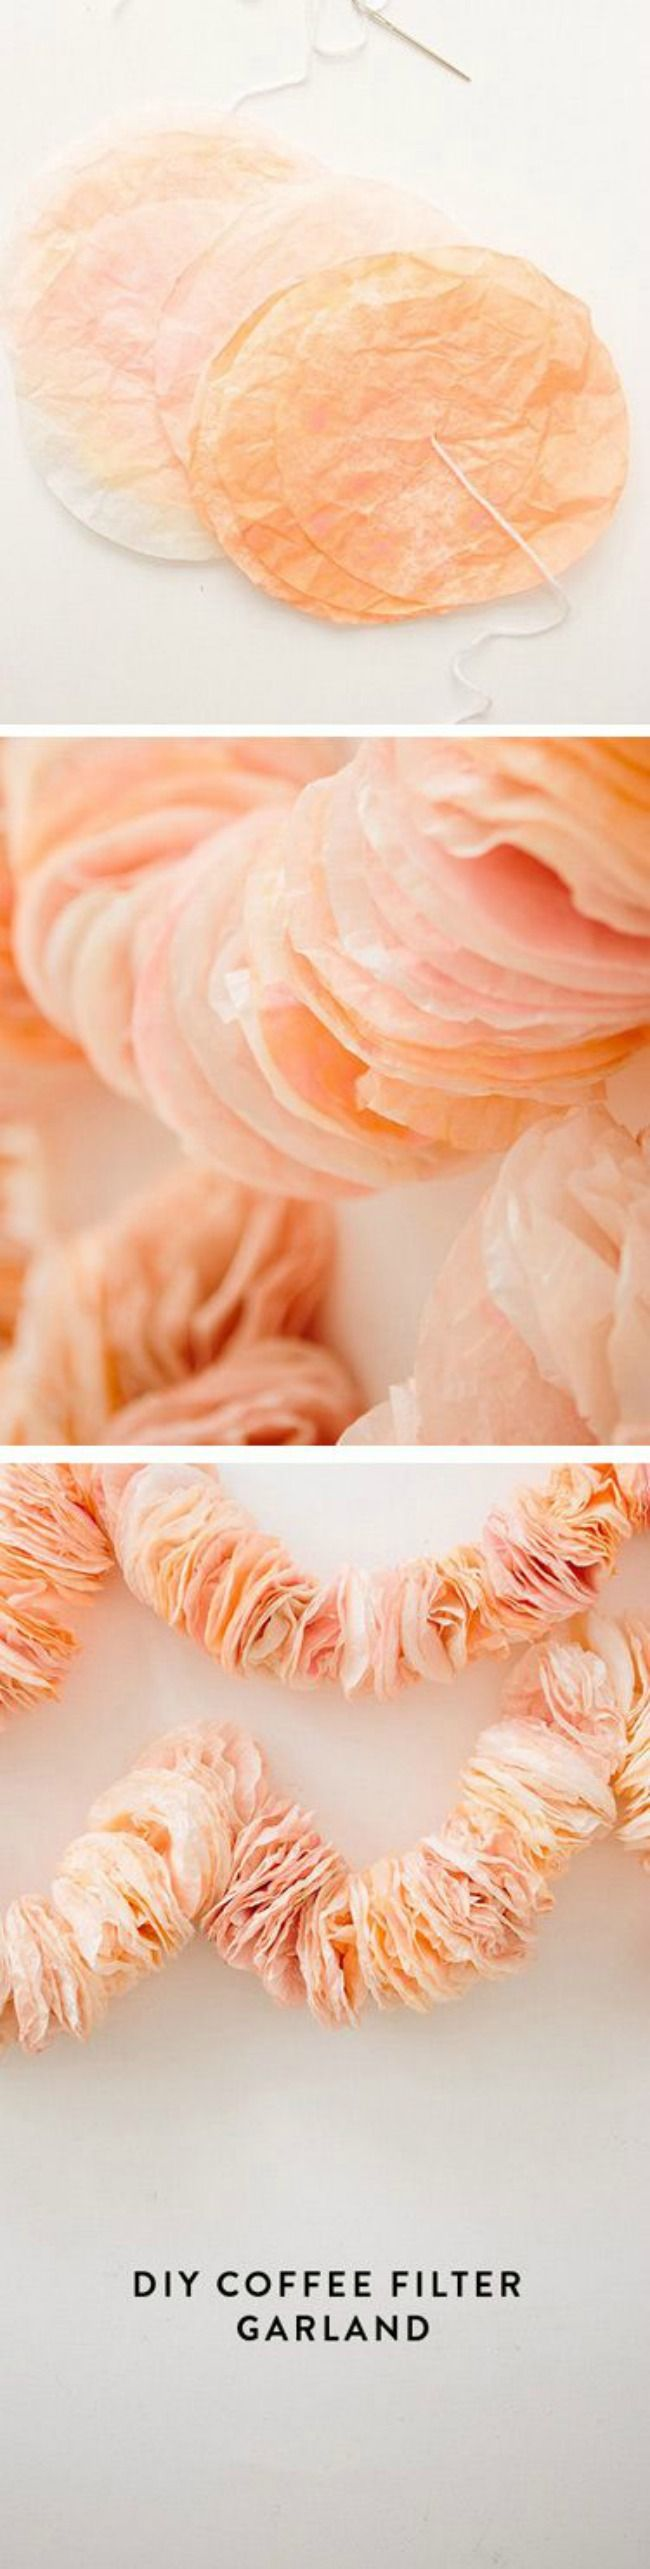 Coffee filter craft ideas! Coffee filter wreath. Coffee filter pom poms. Coffee filter flowers.